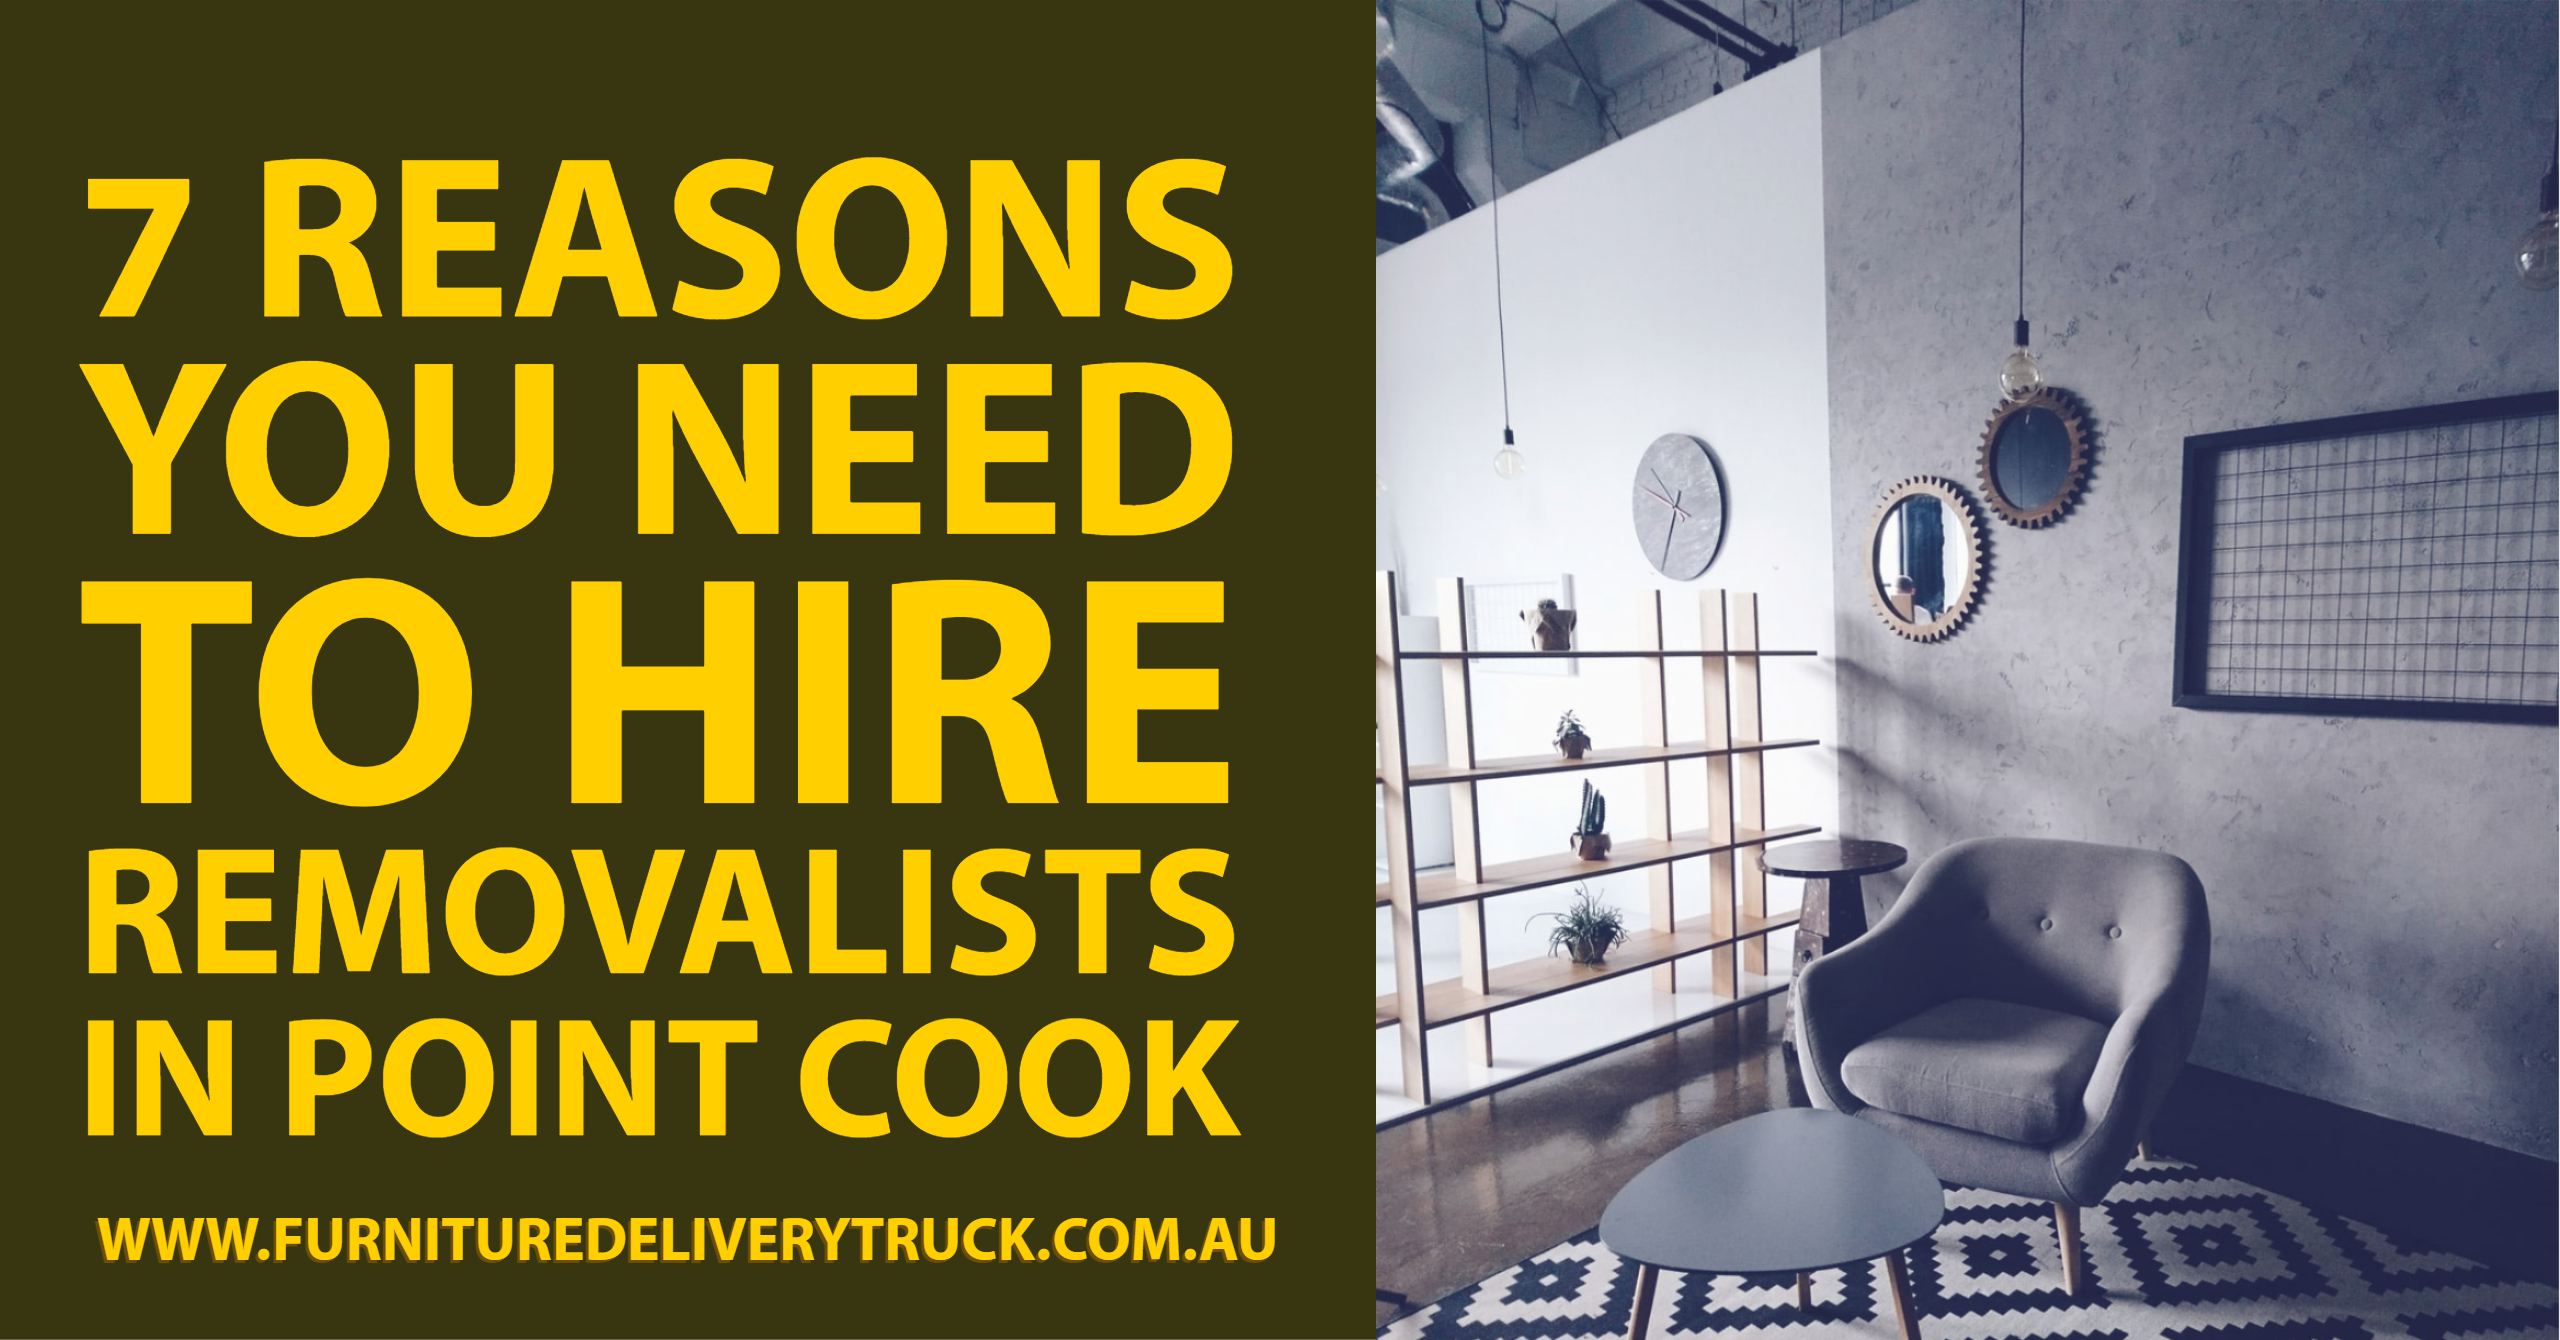 7 Reasons You Need to Hire Removalists in Point Cook